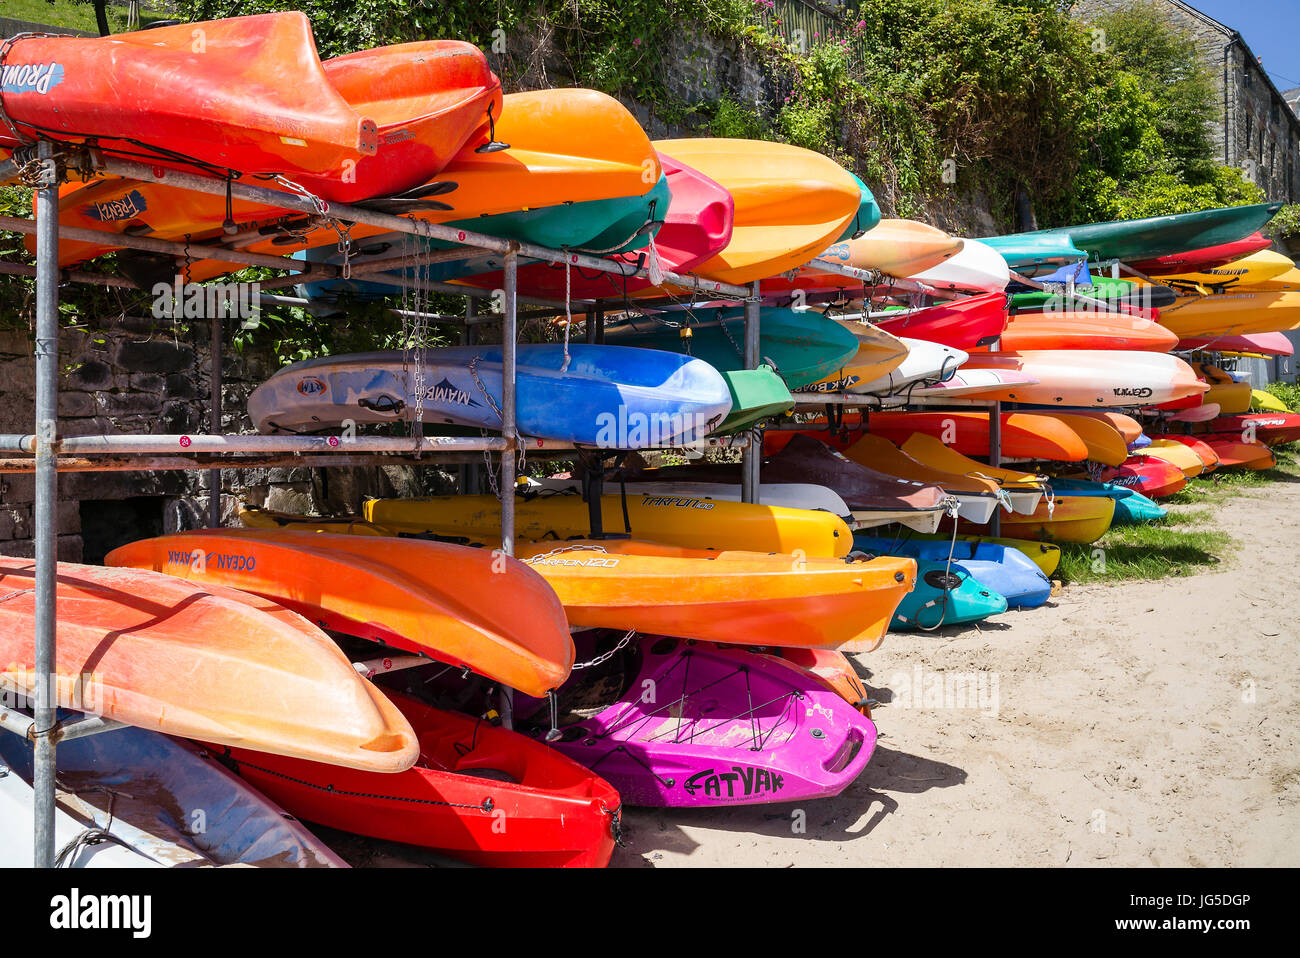 An eye-catching store of kayaks in New Quay Harbour Ceredigion, Wales, UK - Stock Image